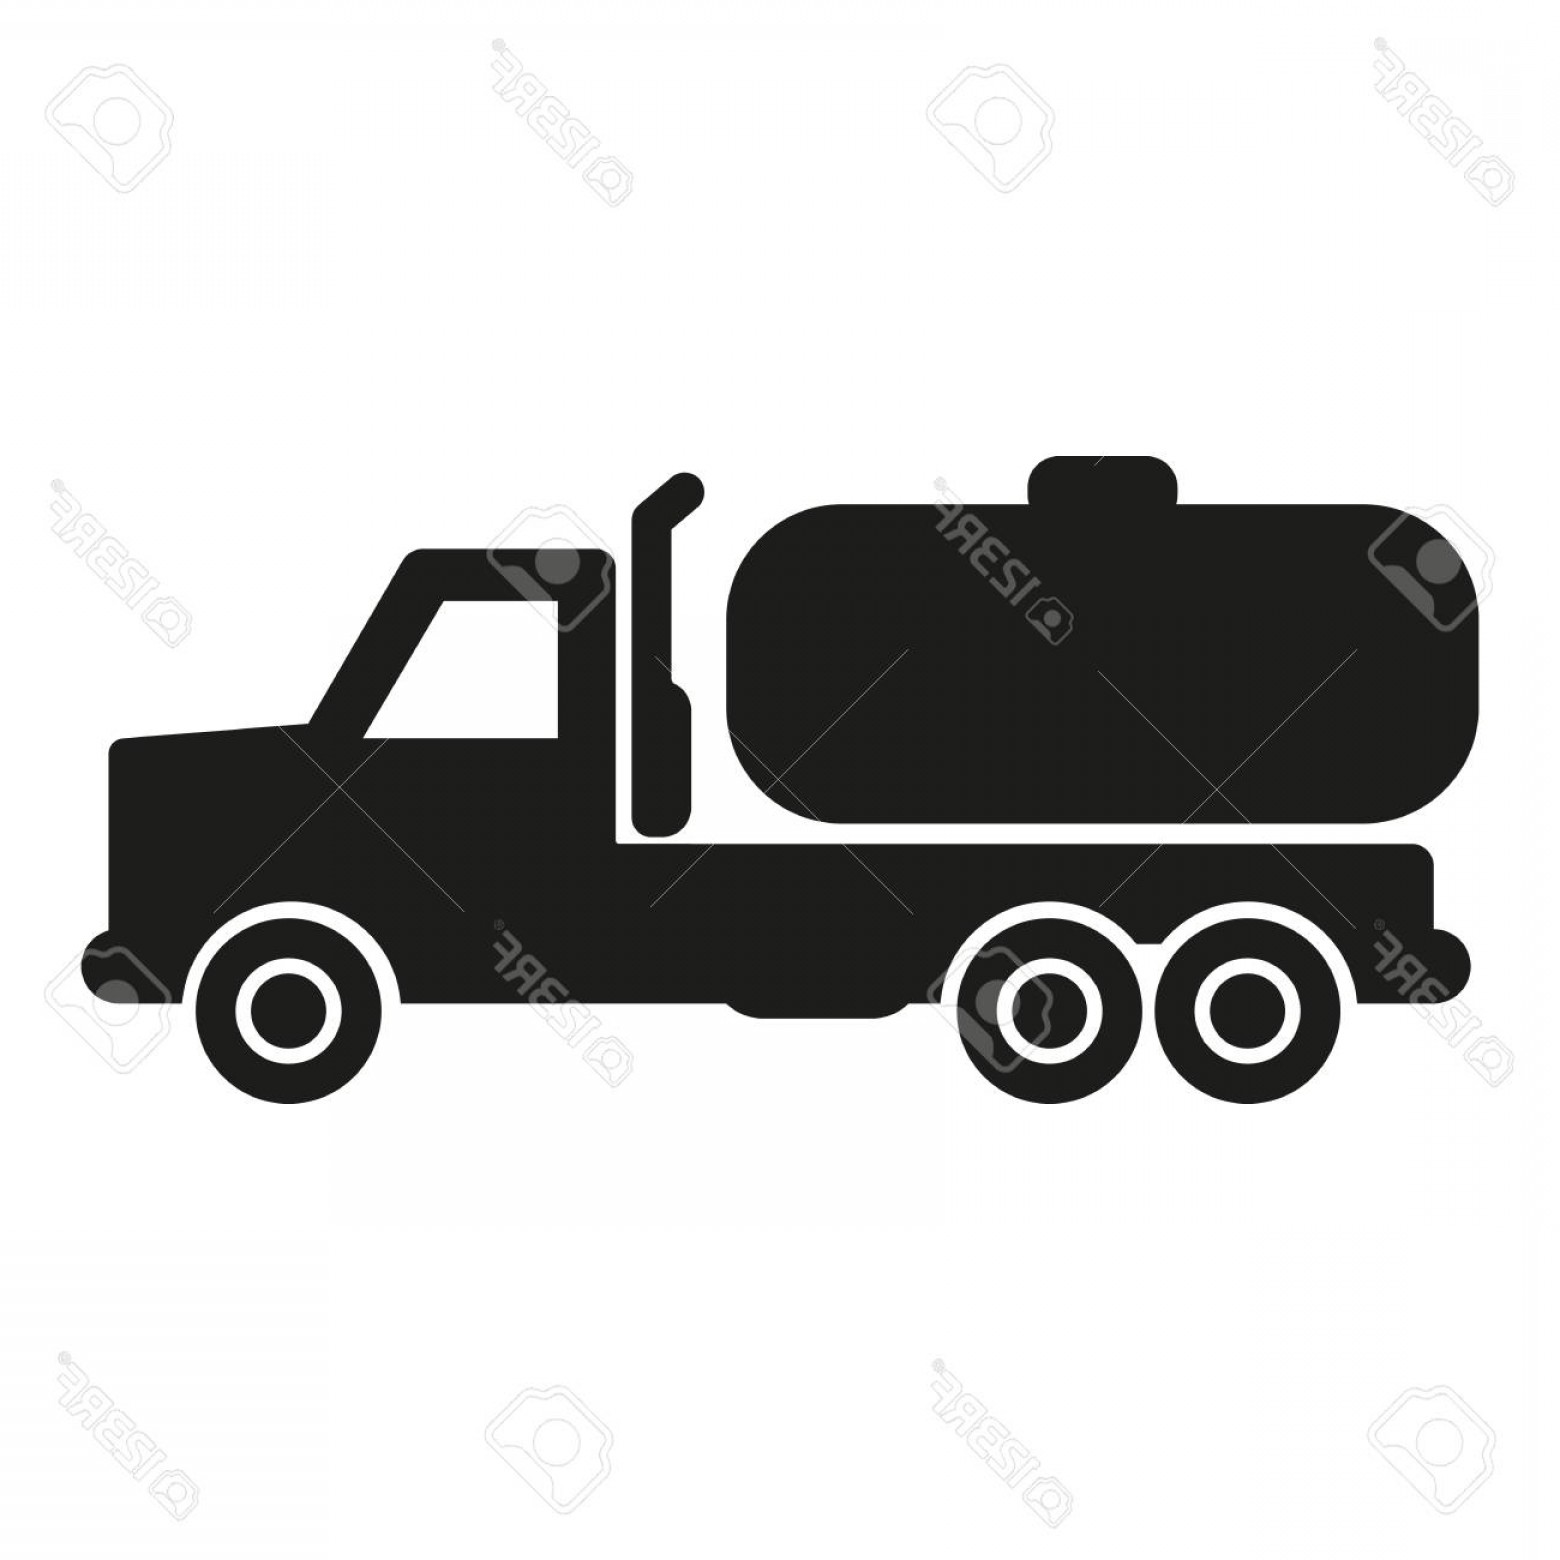 Vector Truck And Trailer Hauling: Photostock Vector Truck With Tank Cistern Trailer Simple Icon Silhouette On White Background Ground Transport Vector I